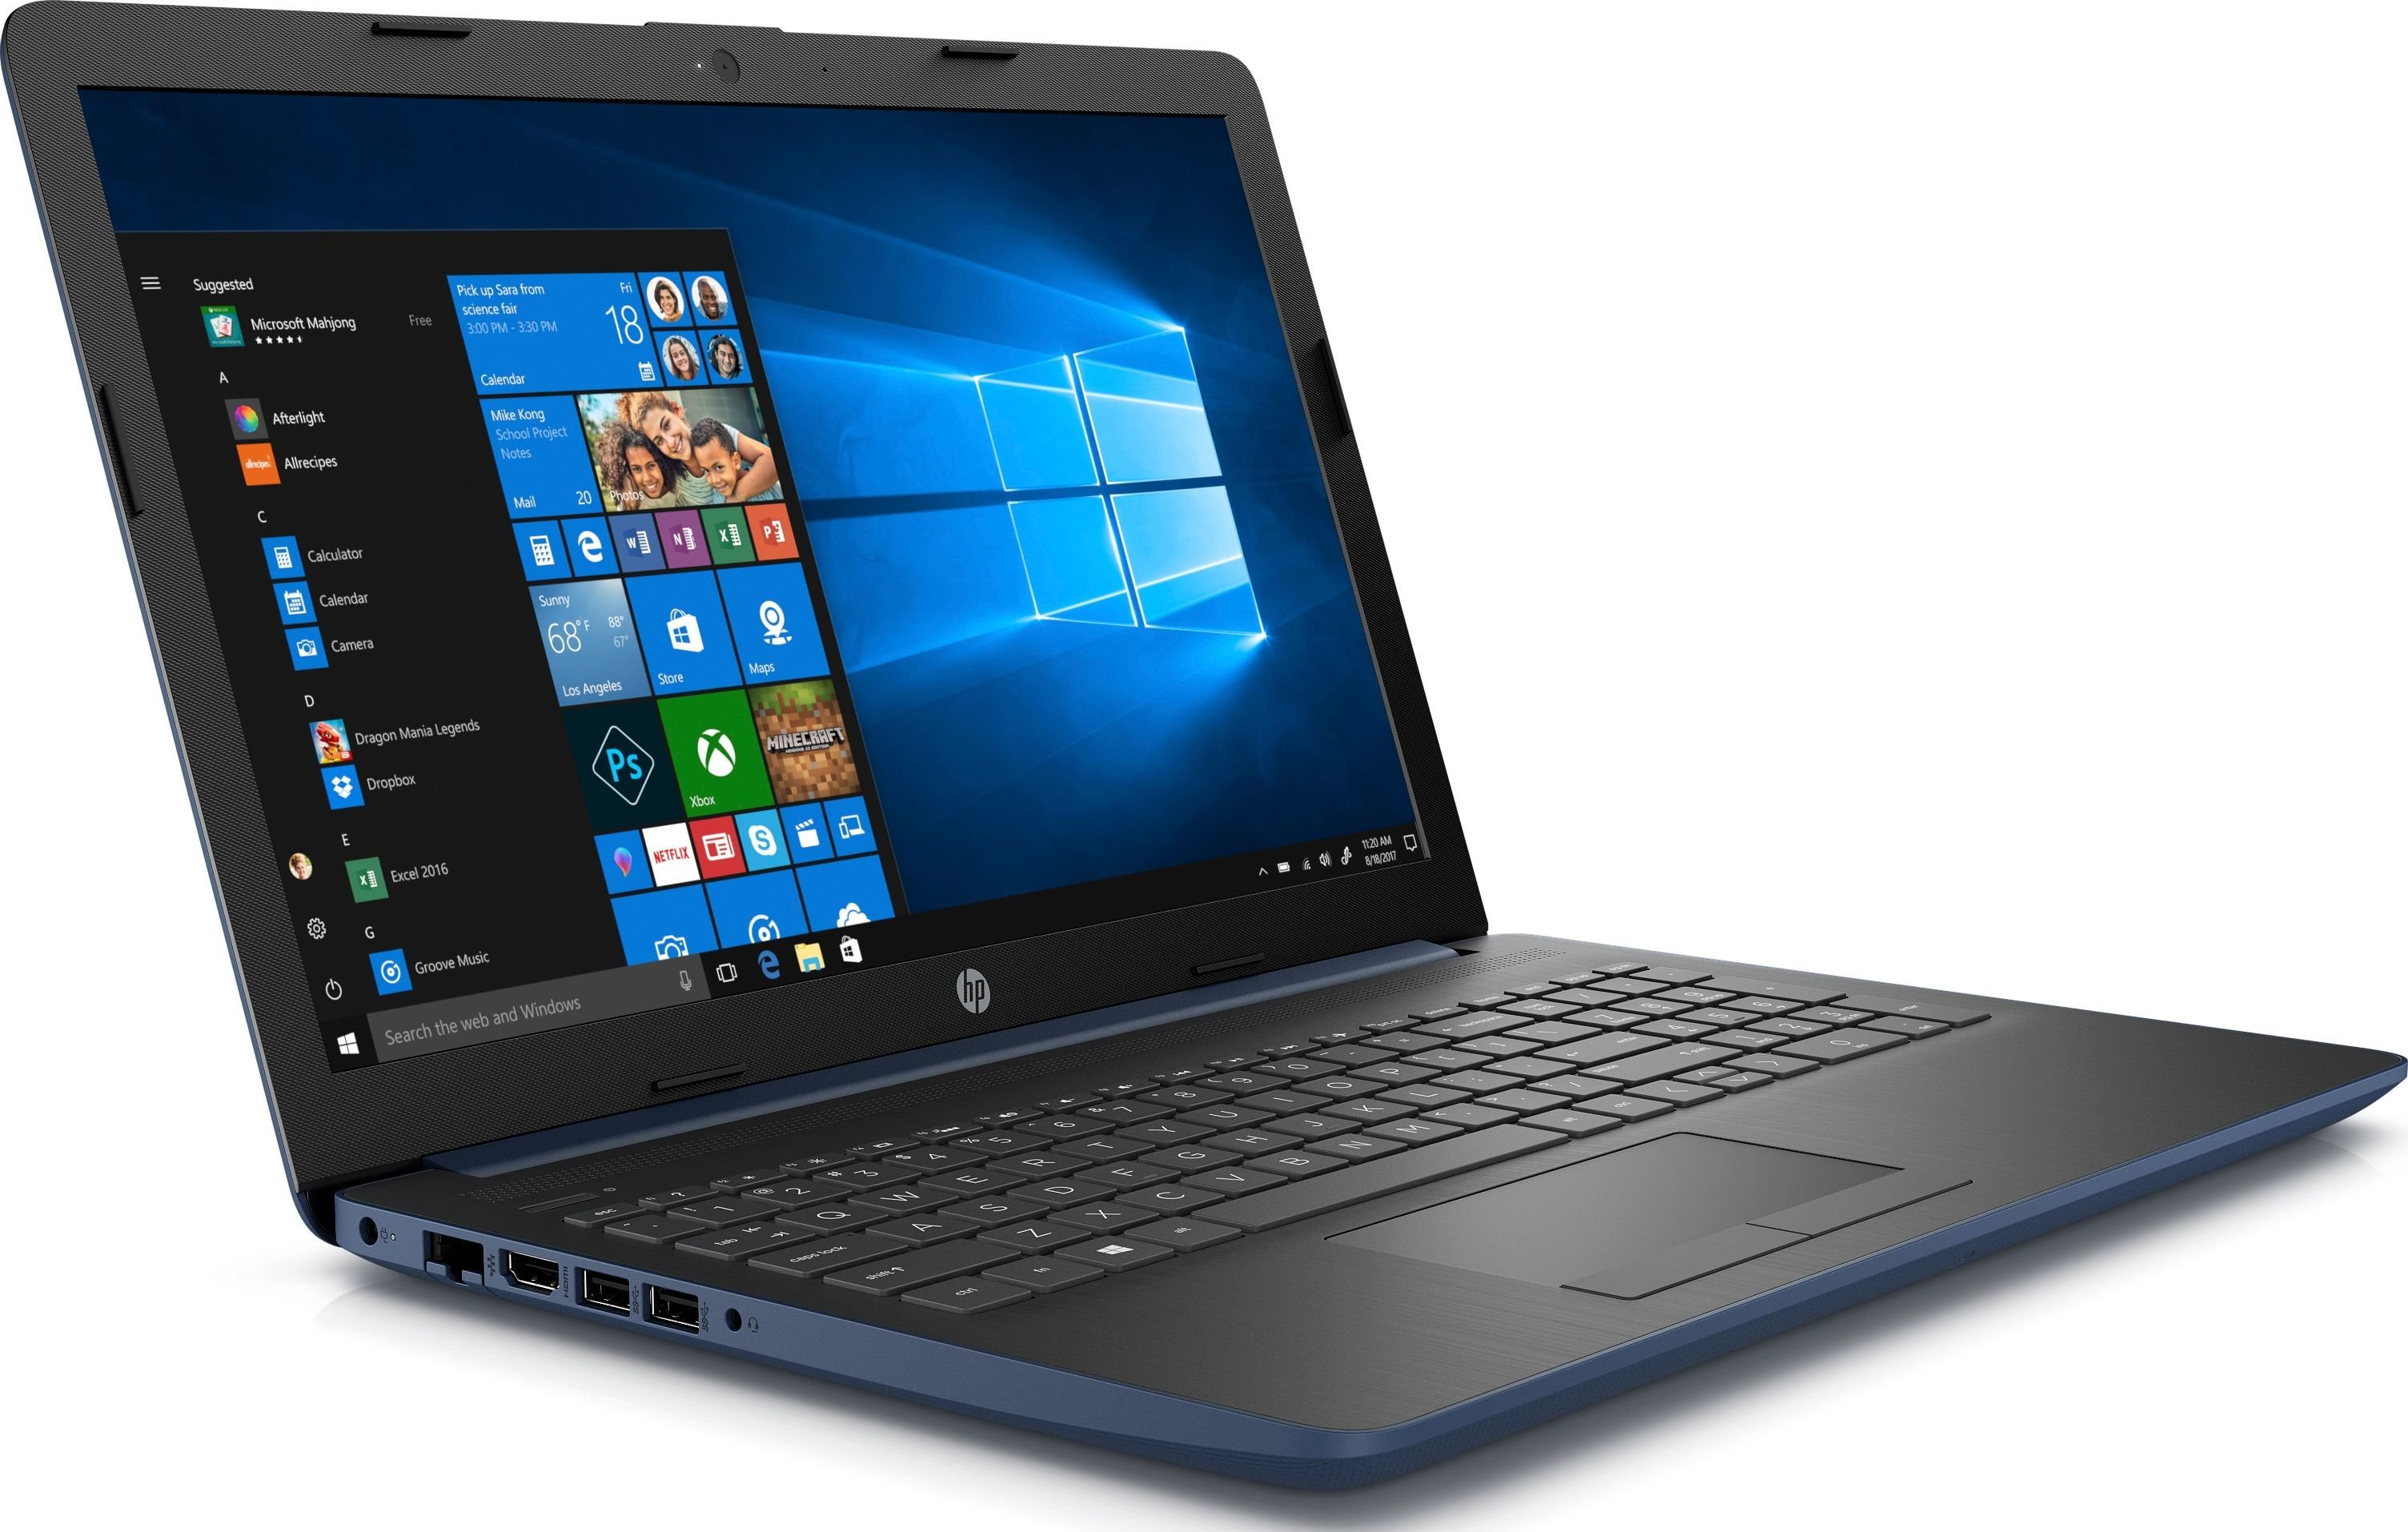 HP 15-da1006nw (6AT44EA) 8 GB RAM/ 256 GB M.2 PCIe/ 1TB HDD/ Win10H